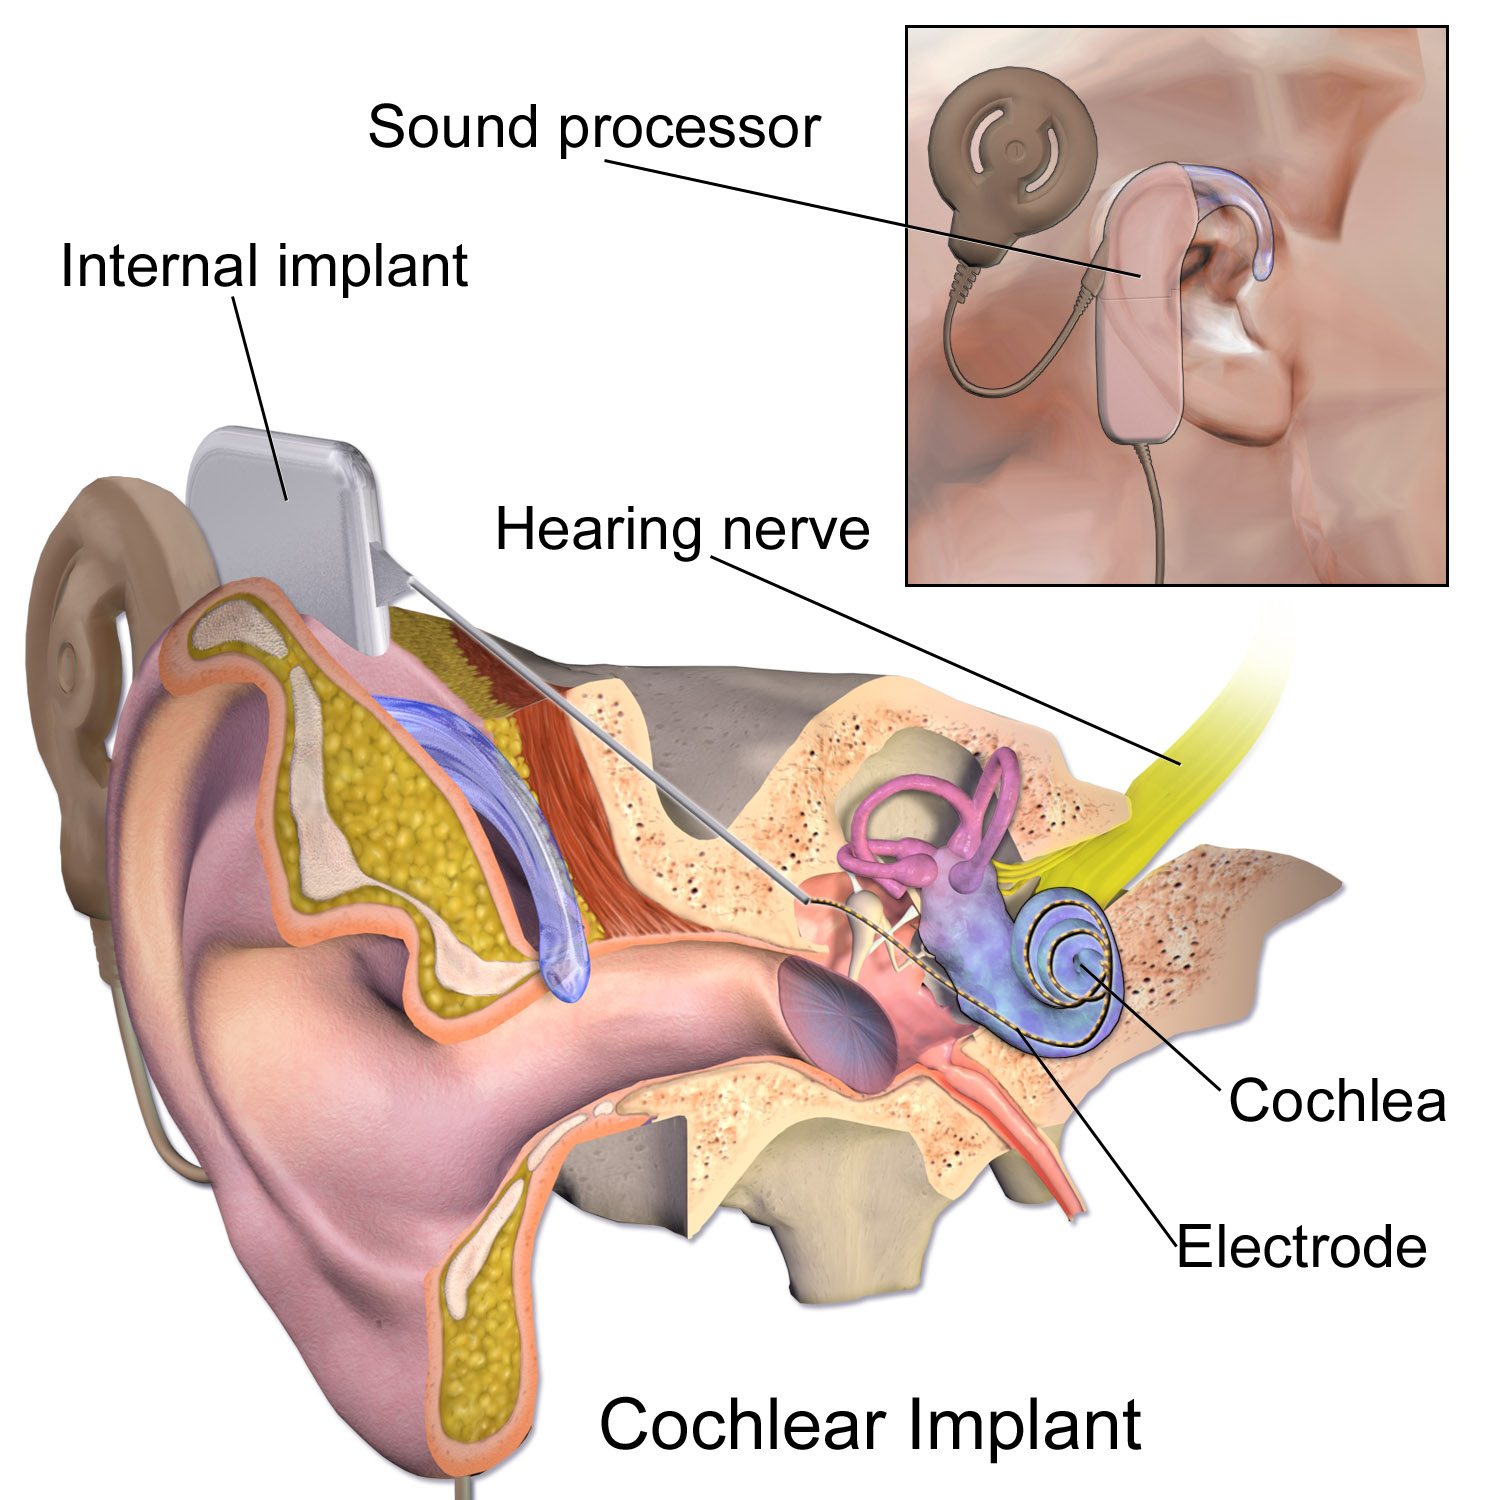 Cochlear implant - Wikipedia on